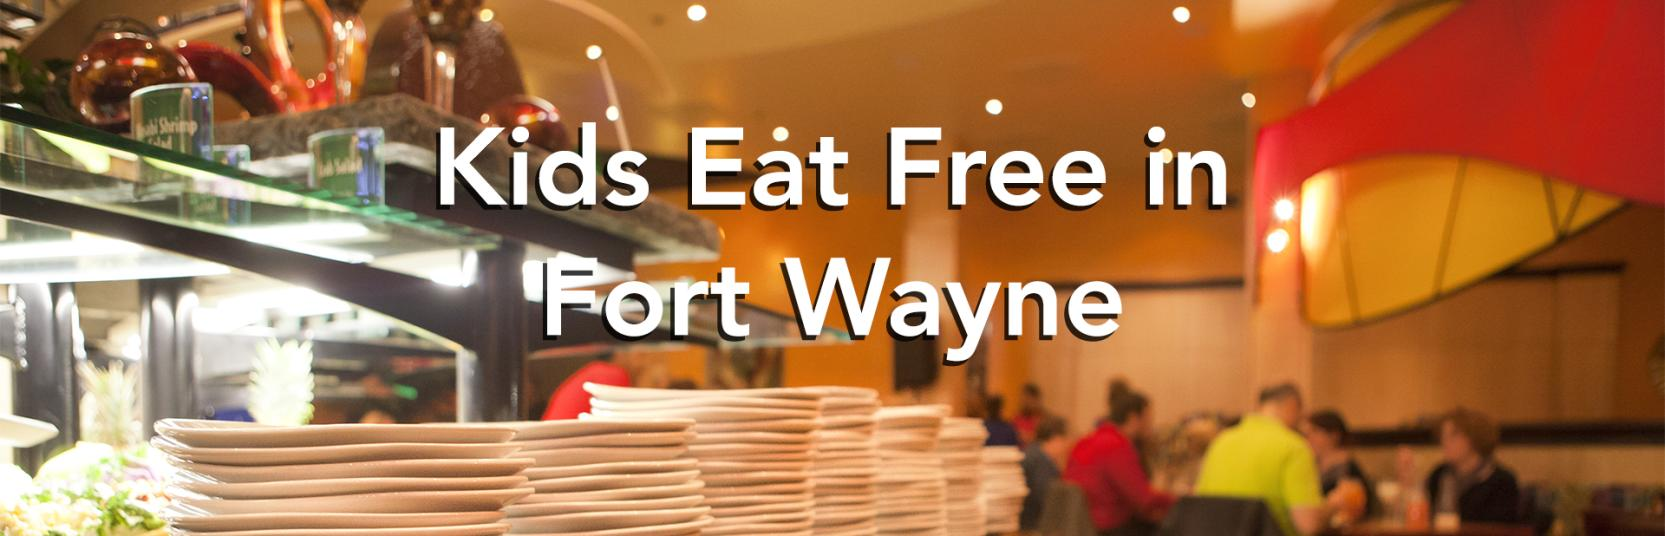 photograph relating to Tucanos Printable Coupons titled Youngsters Take in Totally free within Fort Wayne, Indiana Eating Expert